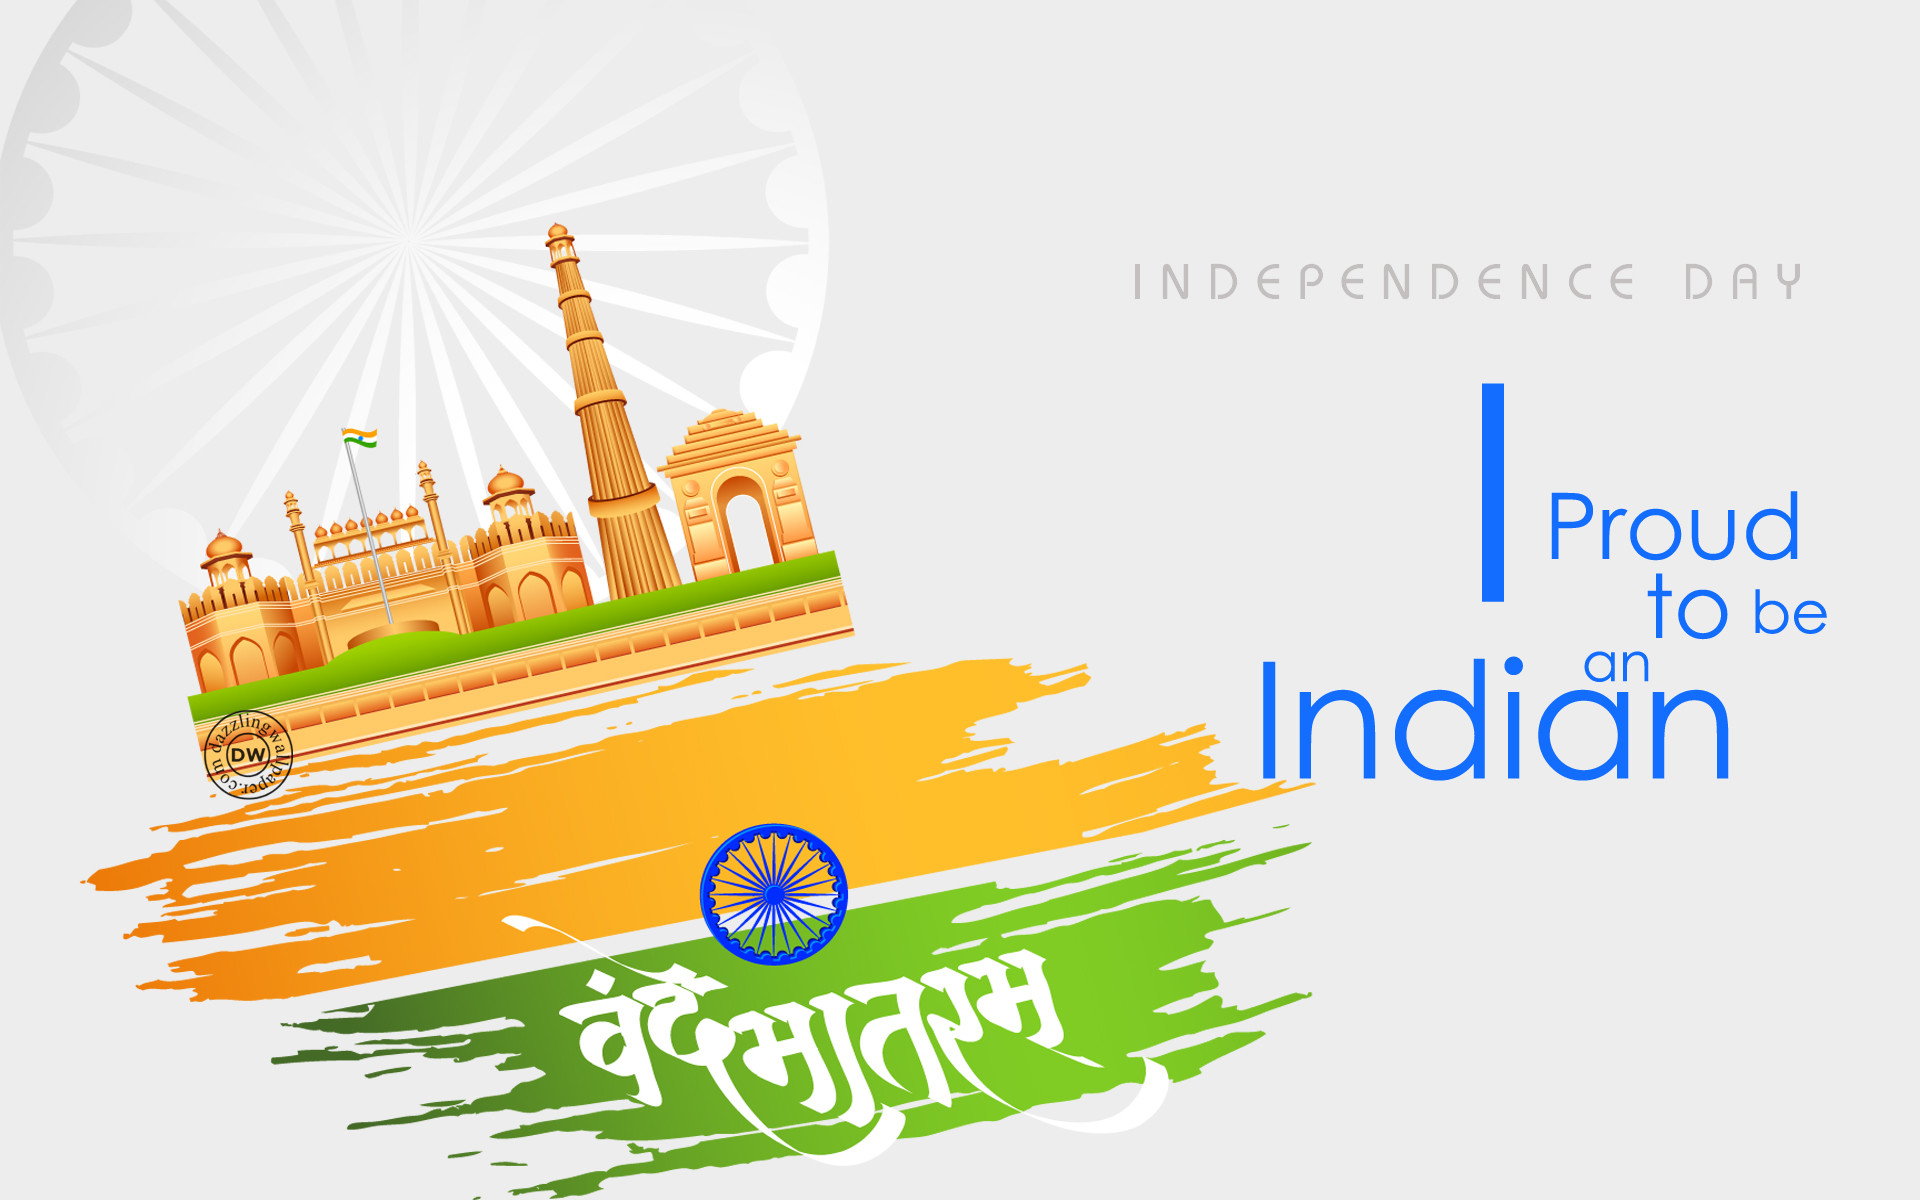 1920x1200 Independence Day, 15 August, Vande Mataram, Proud to be an Indian, Jai